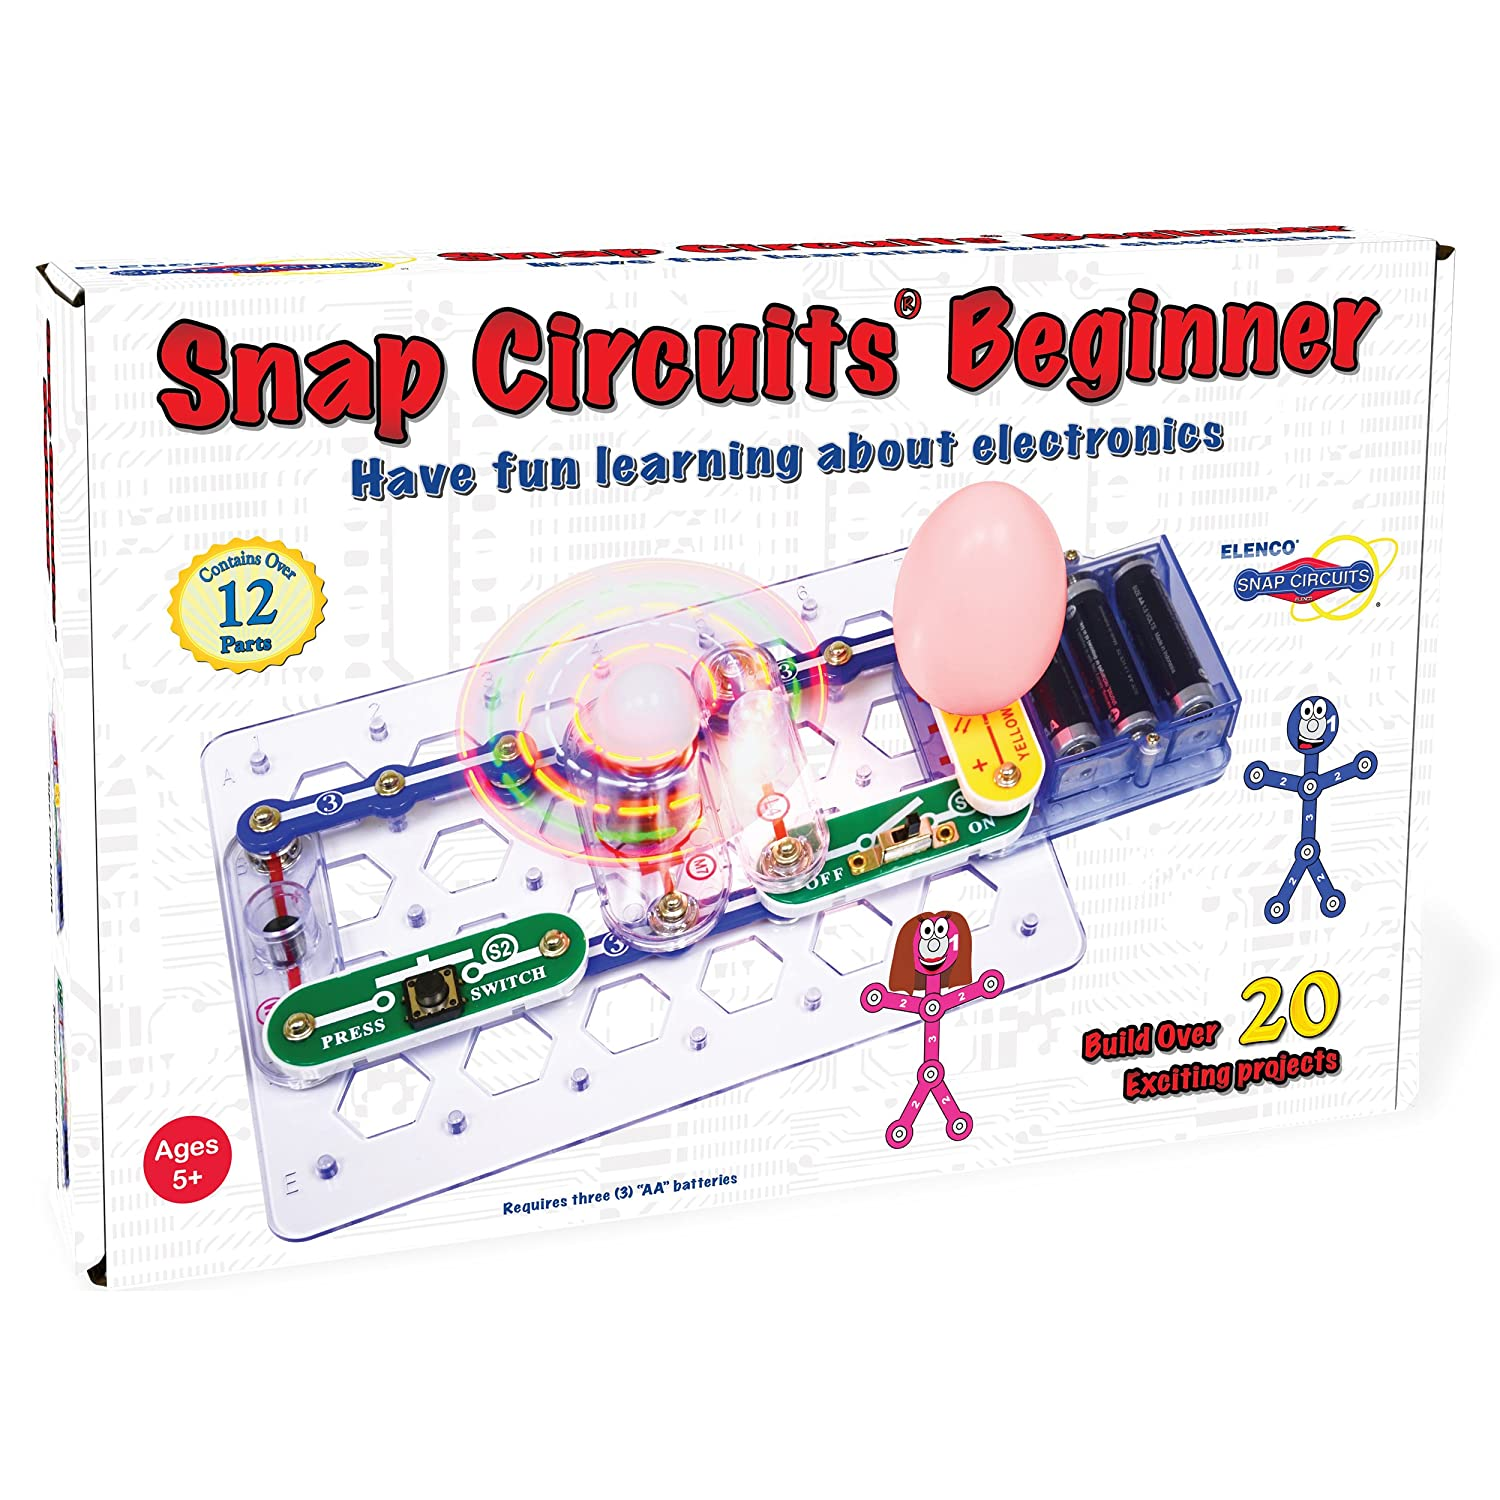 Buy Snap Circuits Beginner Electronics Exploration Kit Over 20 The Objective Of Circuit Is To Build An Electronic Dice Based On Stem Projects 4 Color Project Manual 12 Modules Unlimited Fun Online At Low